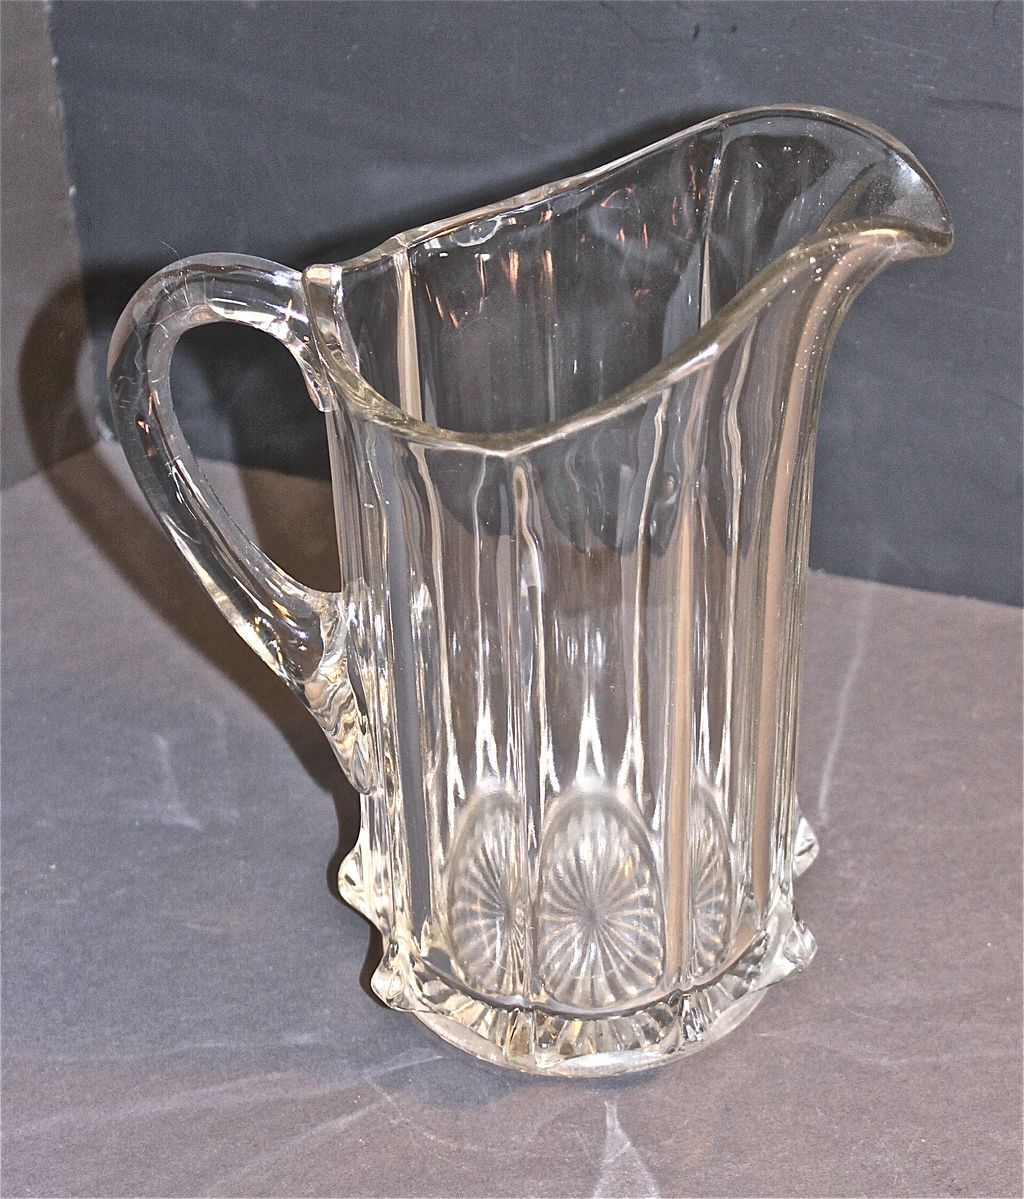 Portland Pitcher: EAPG Portland Water Pitcher C. 1880-1900 From Decosurfn-rl